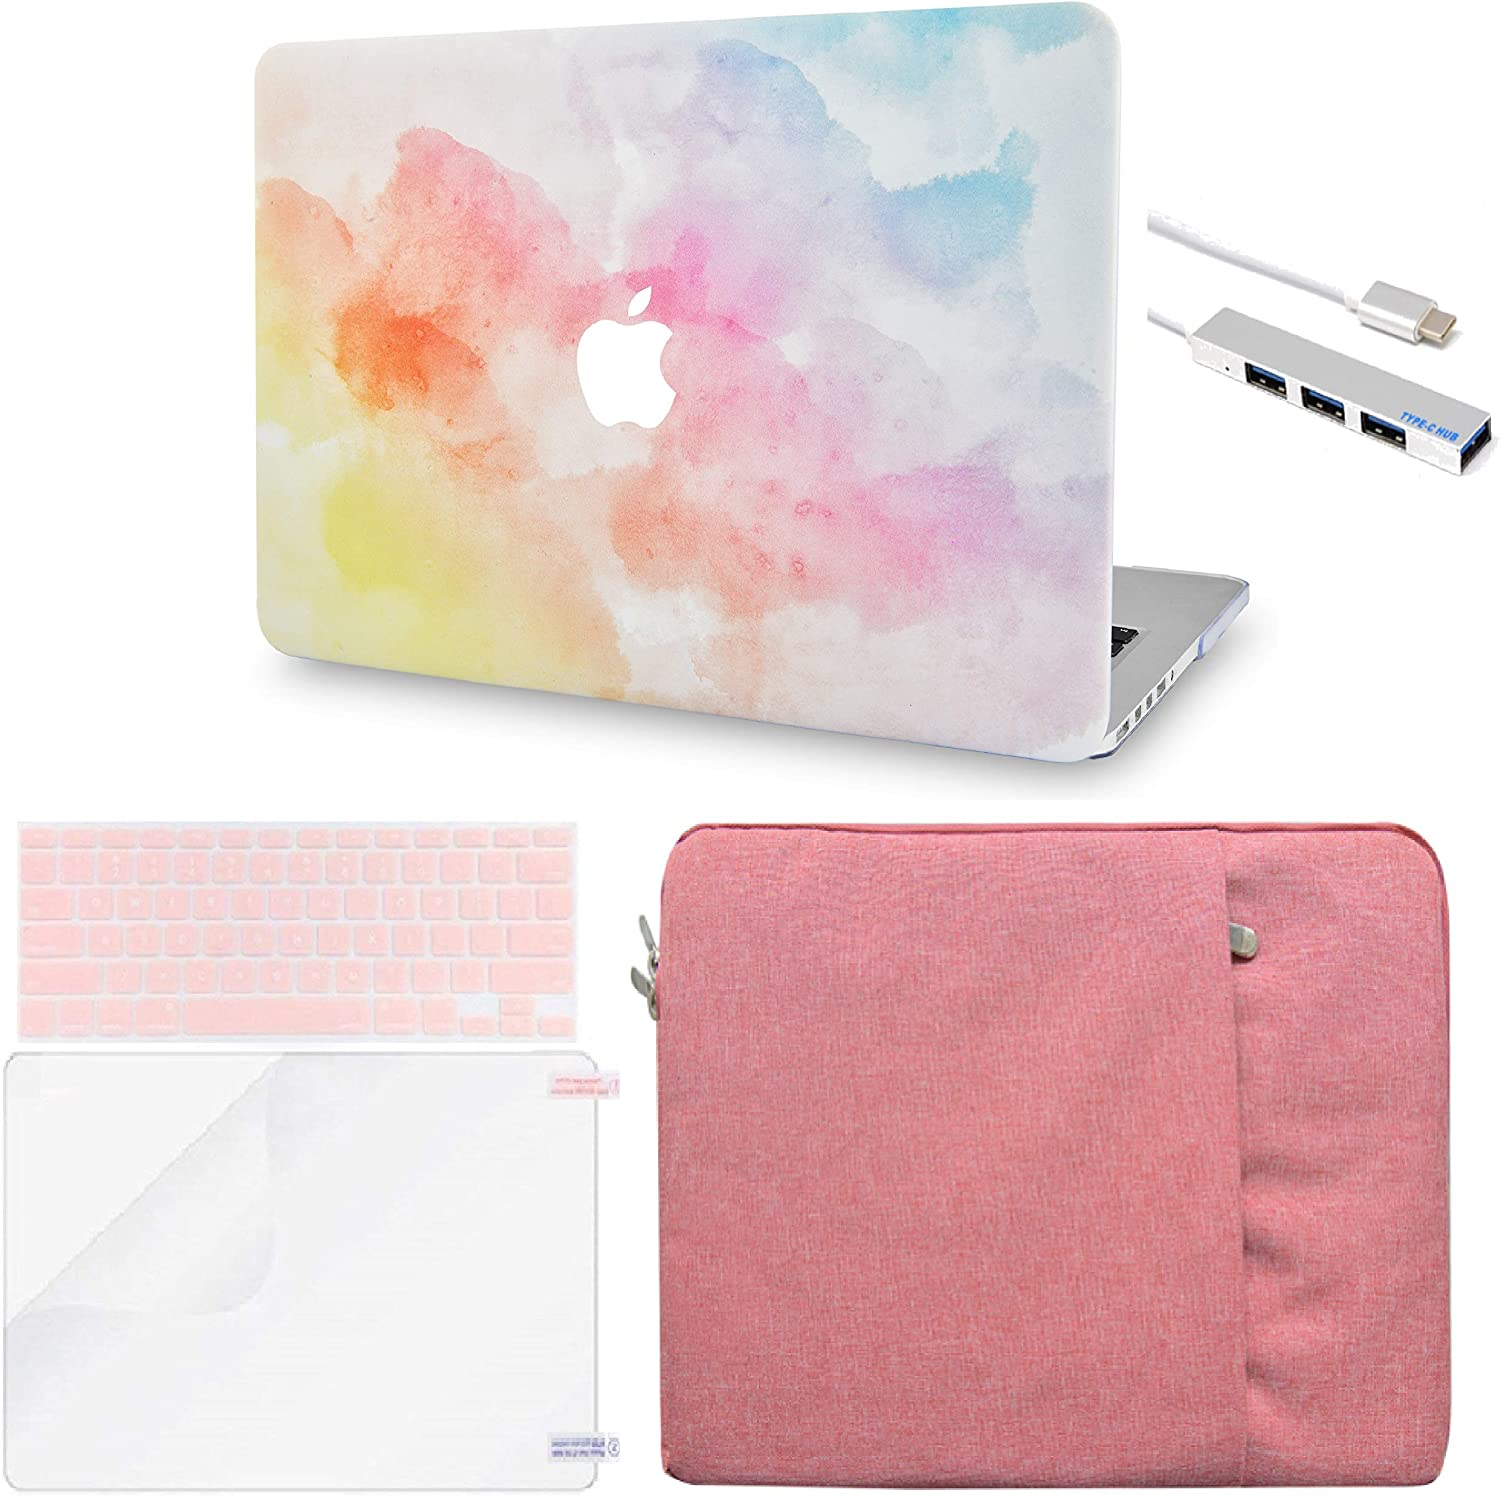 LuvCase 5in1 LaptopCase for MacBook Air 13 Inch (Touch ID)(2018-2020) A1932 Retina Display HardShellCover, Sleeve, USB Hub 3.0, Keyboard Cover & Screen Protector (Dreamy Mist)